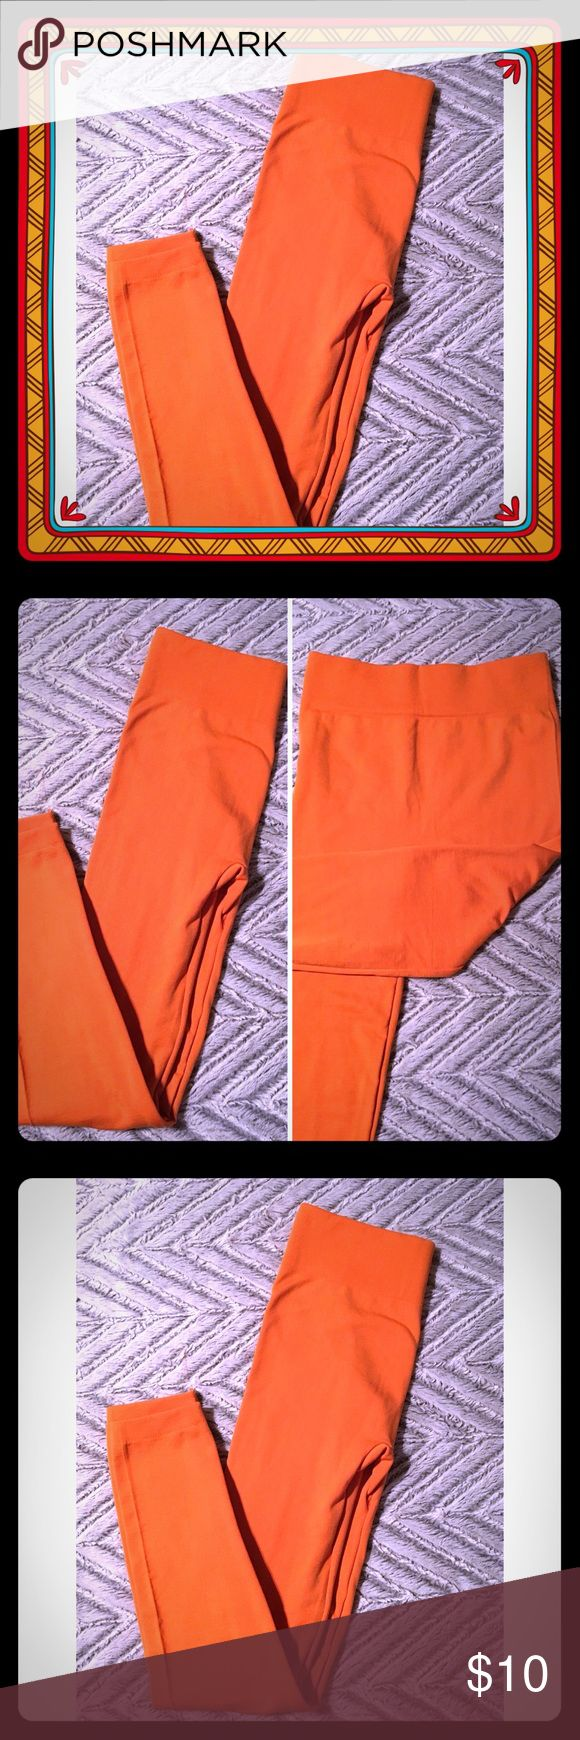 "NWOT Orange Leggings Size Small/Medium Very cute brand new without tags quilted leggings  Bright orange color  Machine Washable  Approximate Measurements  Small/medium stretchable  Rise 10"" Inseam 24"" Pants Leggings"